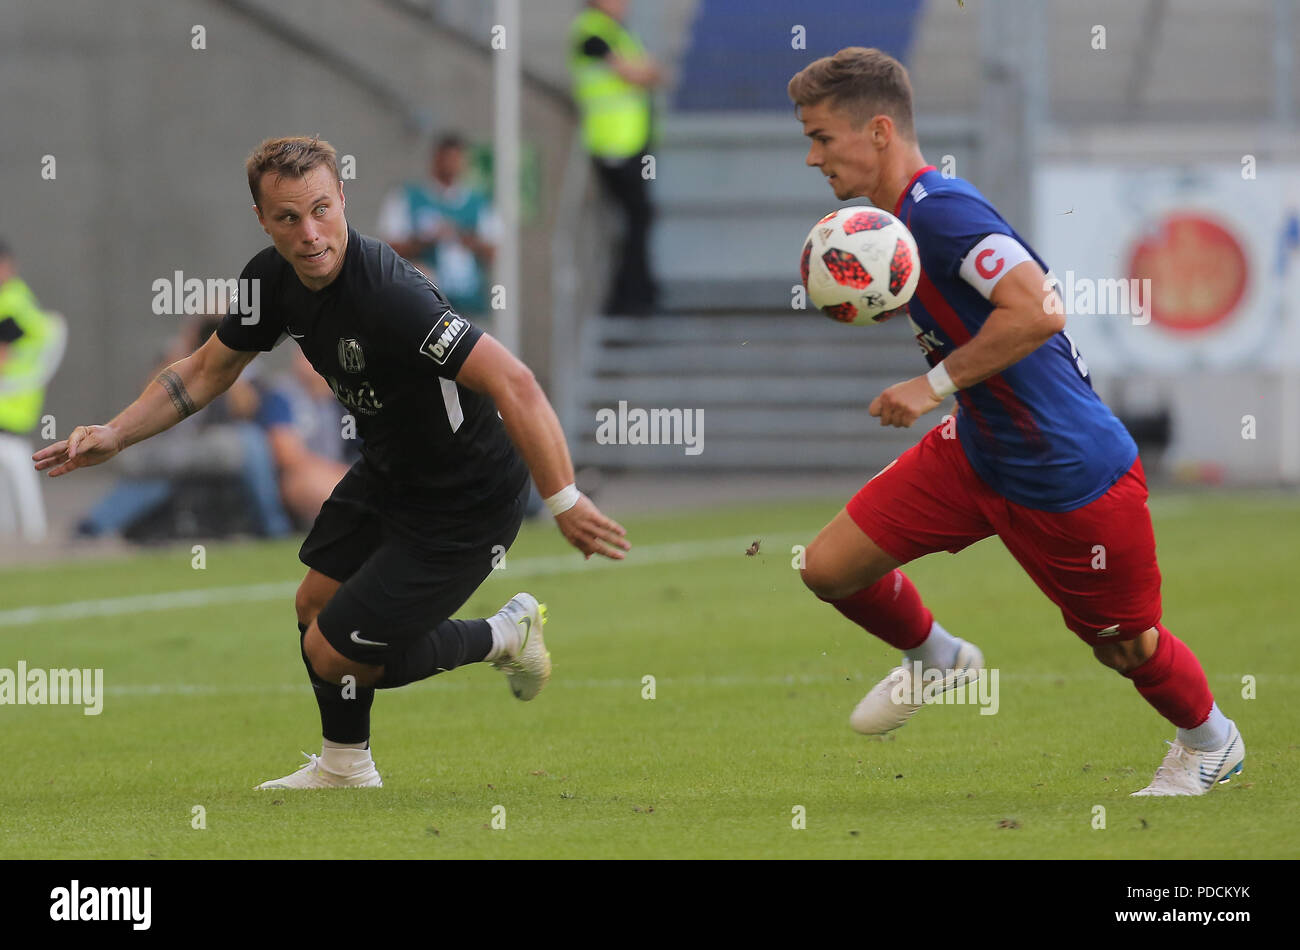 Duisburg, Germany. 08th Aug, 2018. Duisburg, Germany August 8 2018, 3rd league matchday 3, KFC Uerdingen 05 vs SV Meppen: Nico Granatowski (SVM), Mario Erb (KFC) in competition. Credit: Juergen Schwarz/Alamy Live News - Stock Image